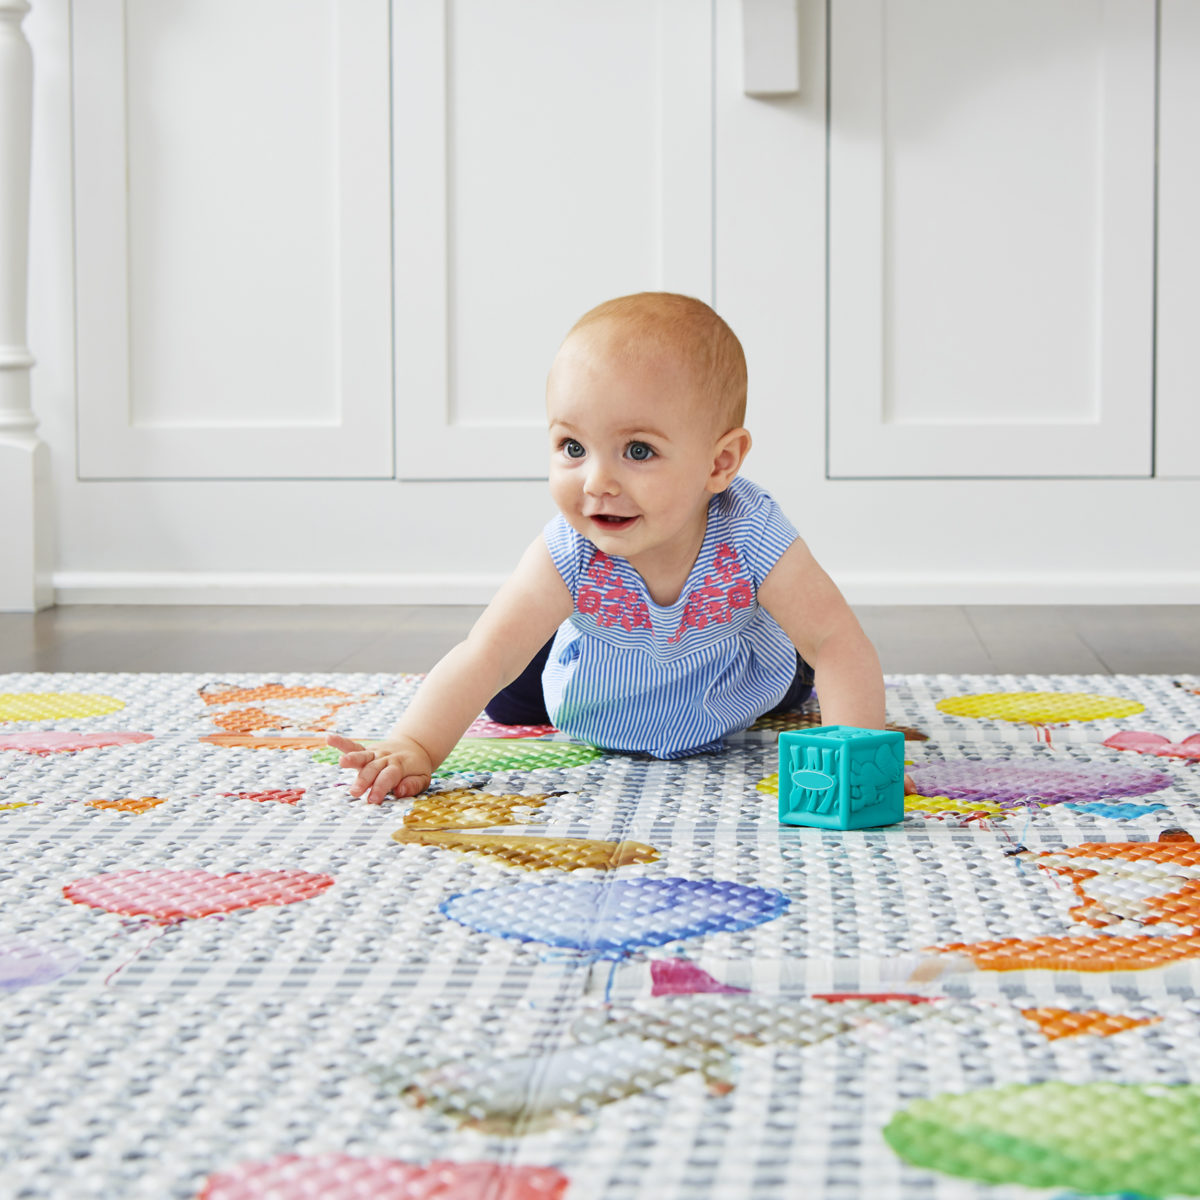 Baby on Balloon Ride Play Mat